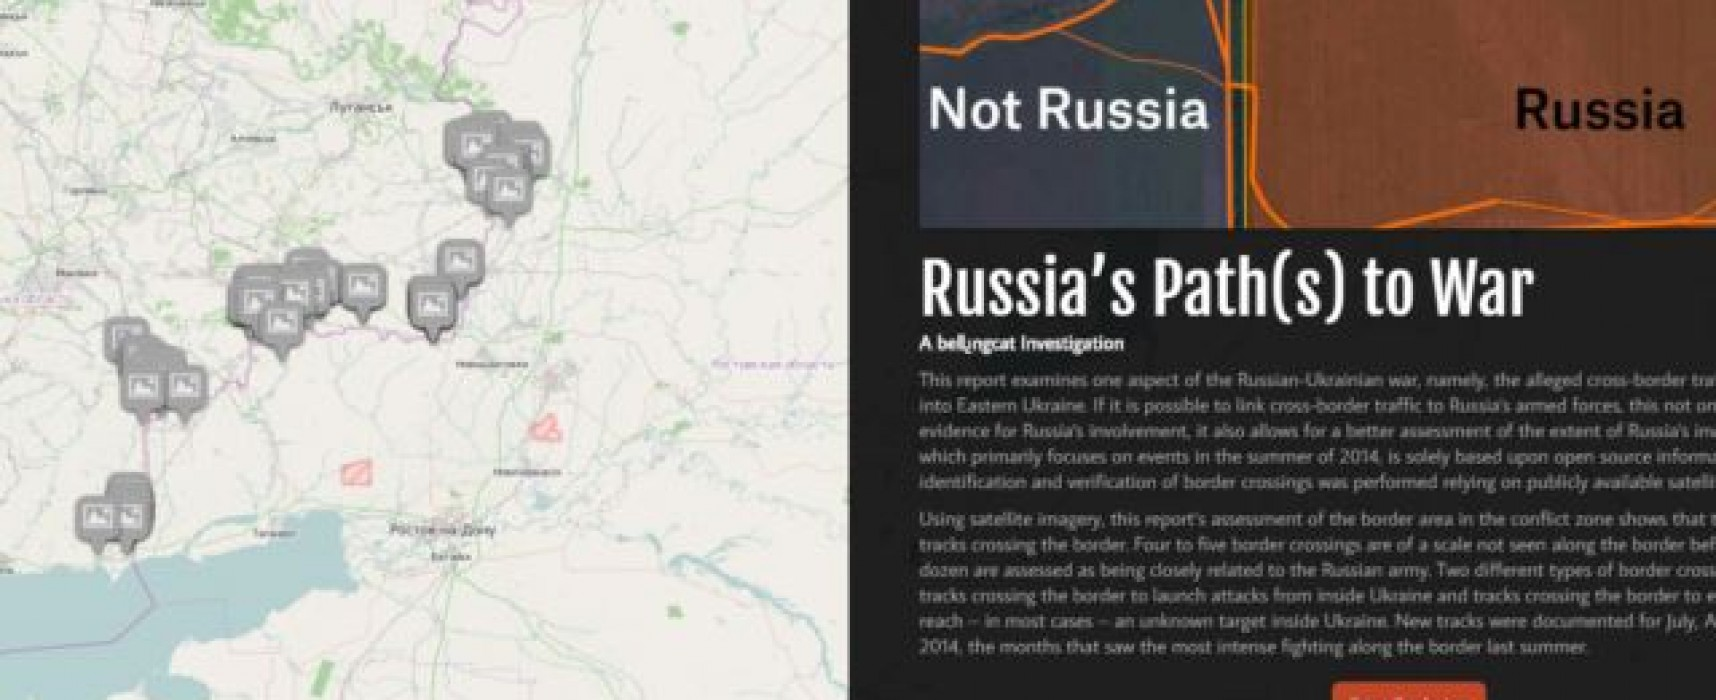 Bellingcat Published Report on Russian Military Crossing the Border of Ukraine